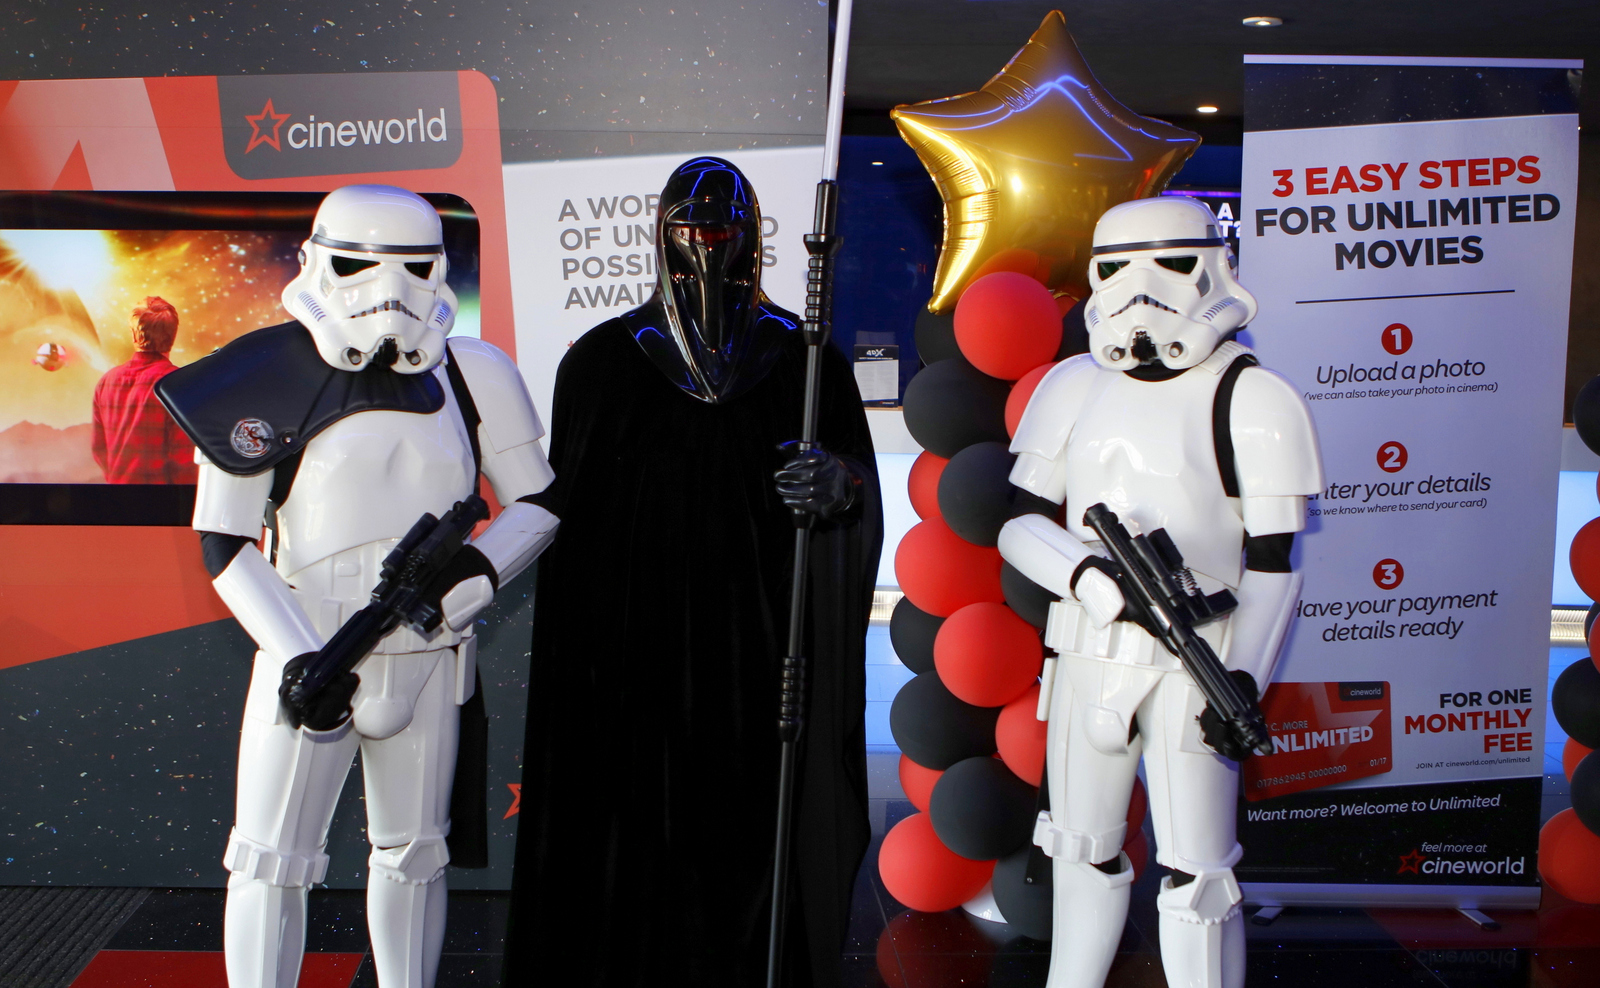 Aspergers, autism, Autism All Stars, autism awareness, characters, charity, cinema, Cineworld, cosplay, diversity, events, sussex, crawley, west sussex, Star Wars, Skywalker, Cosplay